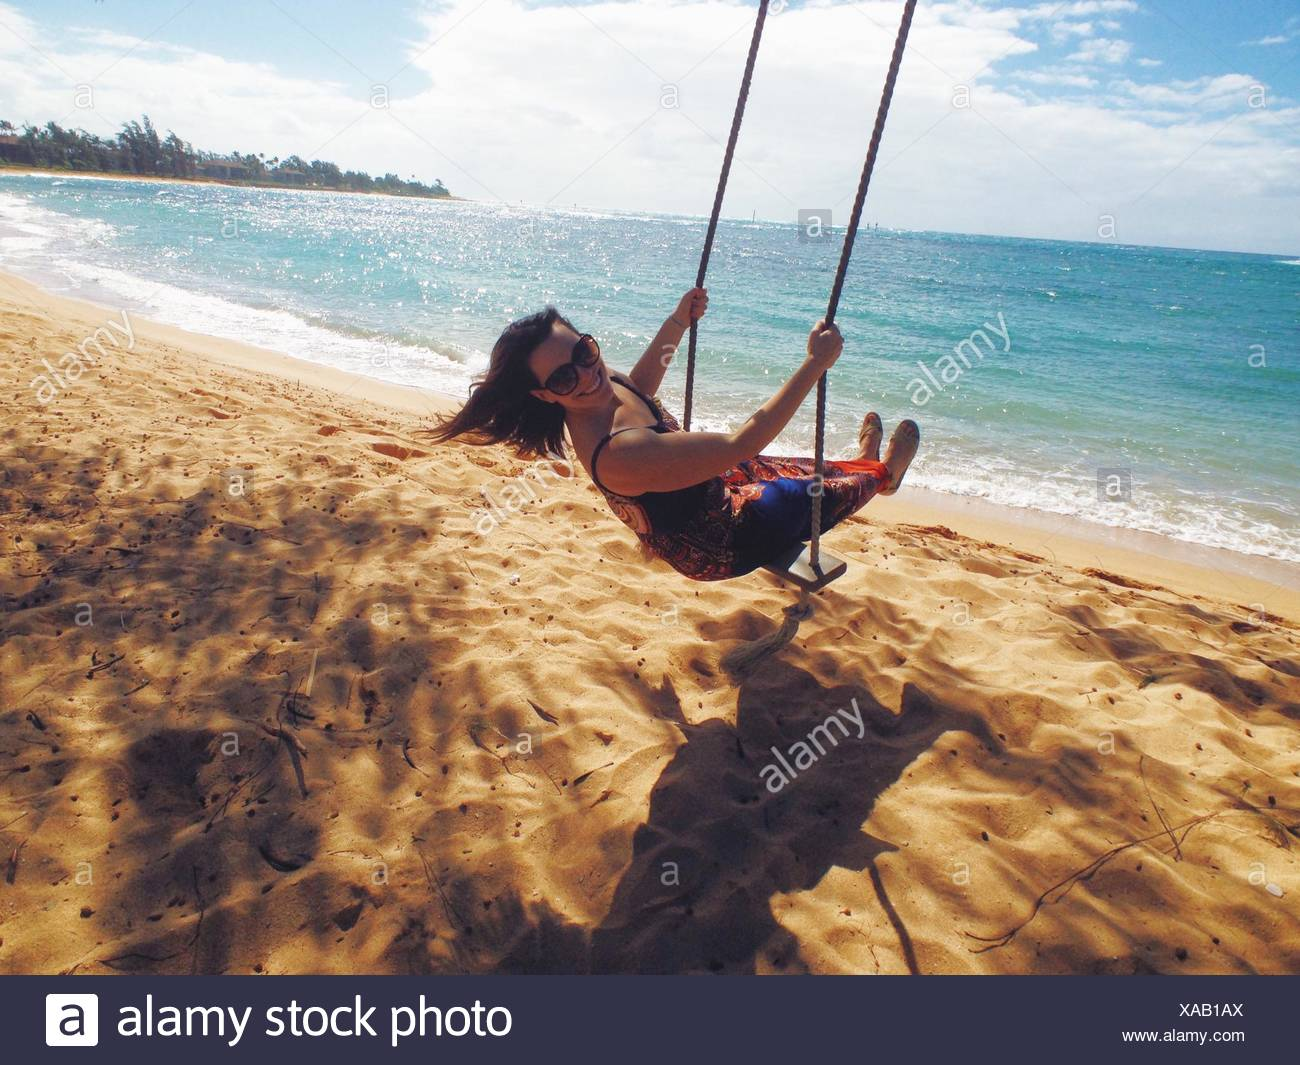 Woman On Beach Swing Photo Stock